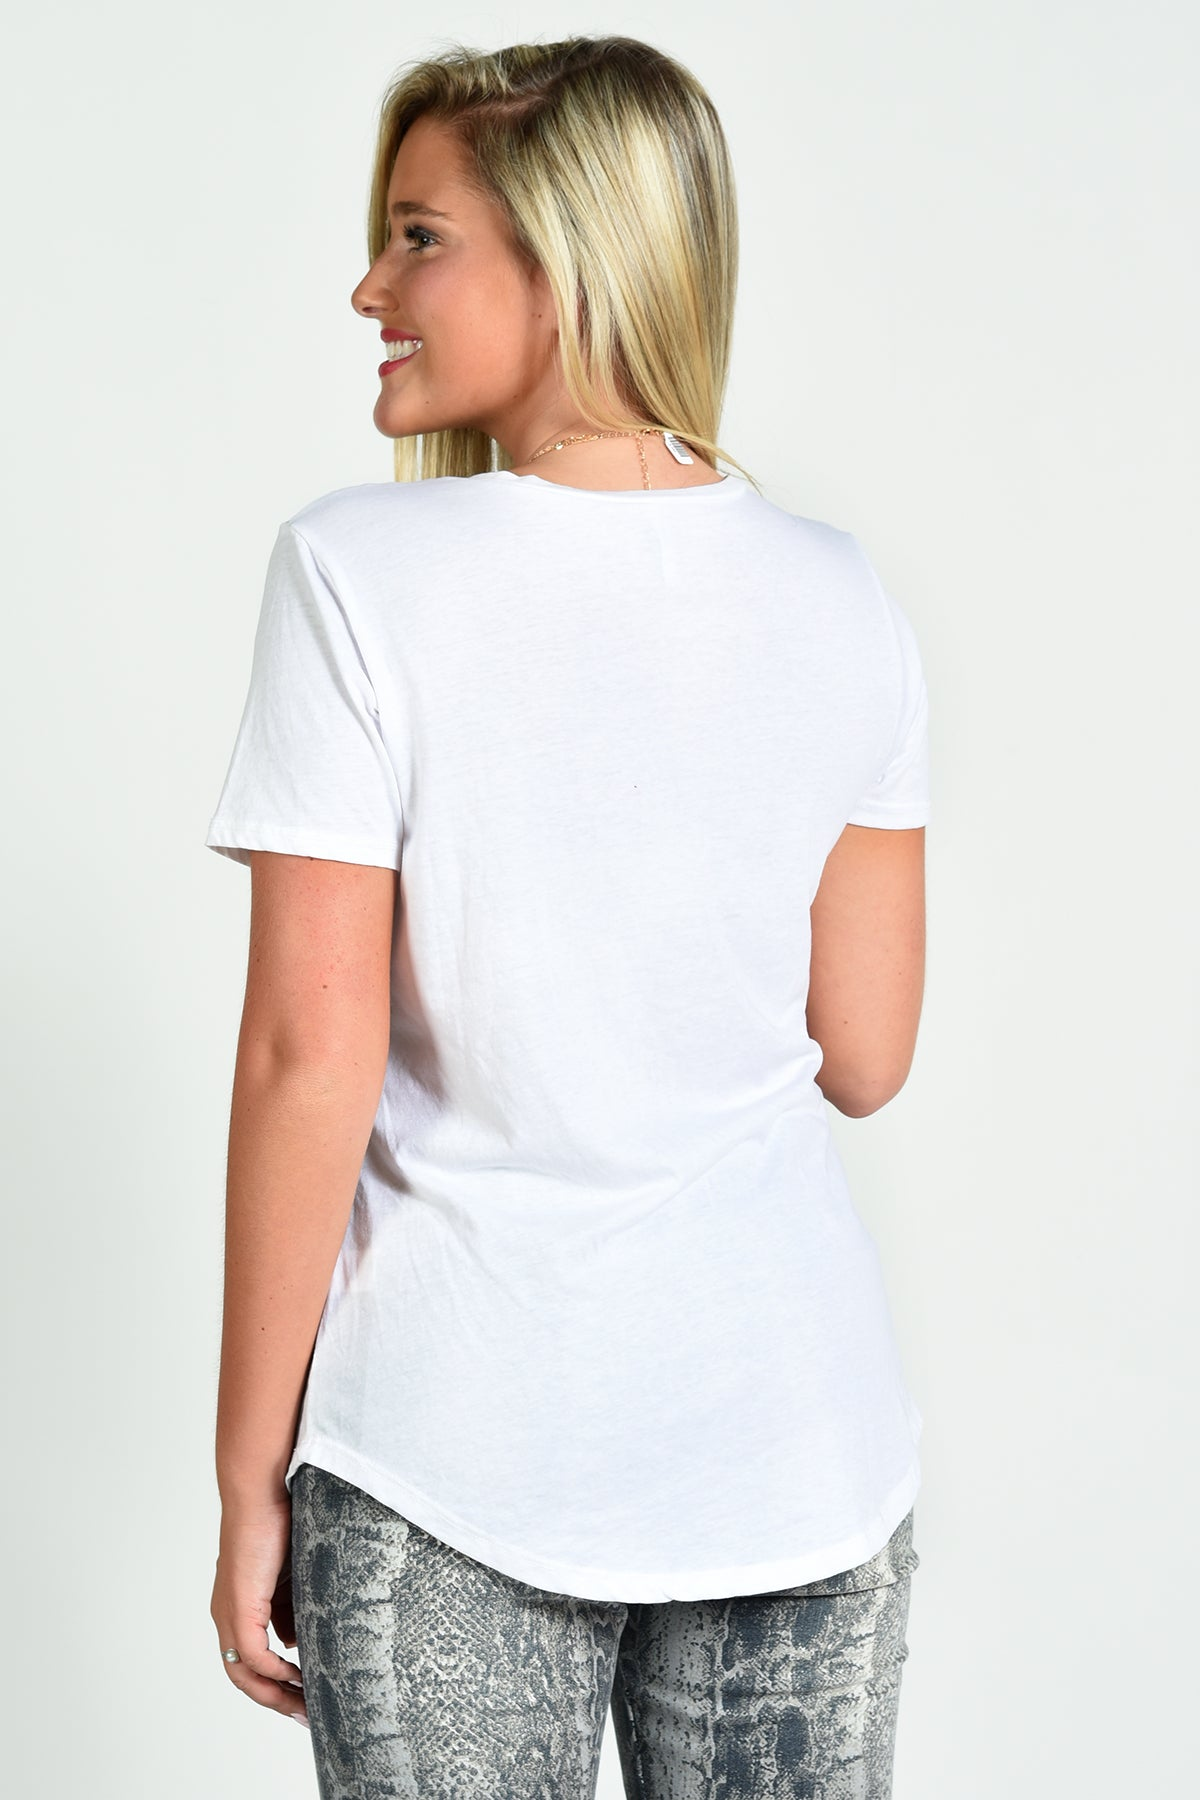 Z SUPPLY POCKET TEE -WHITE